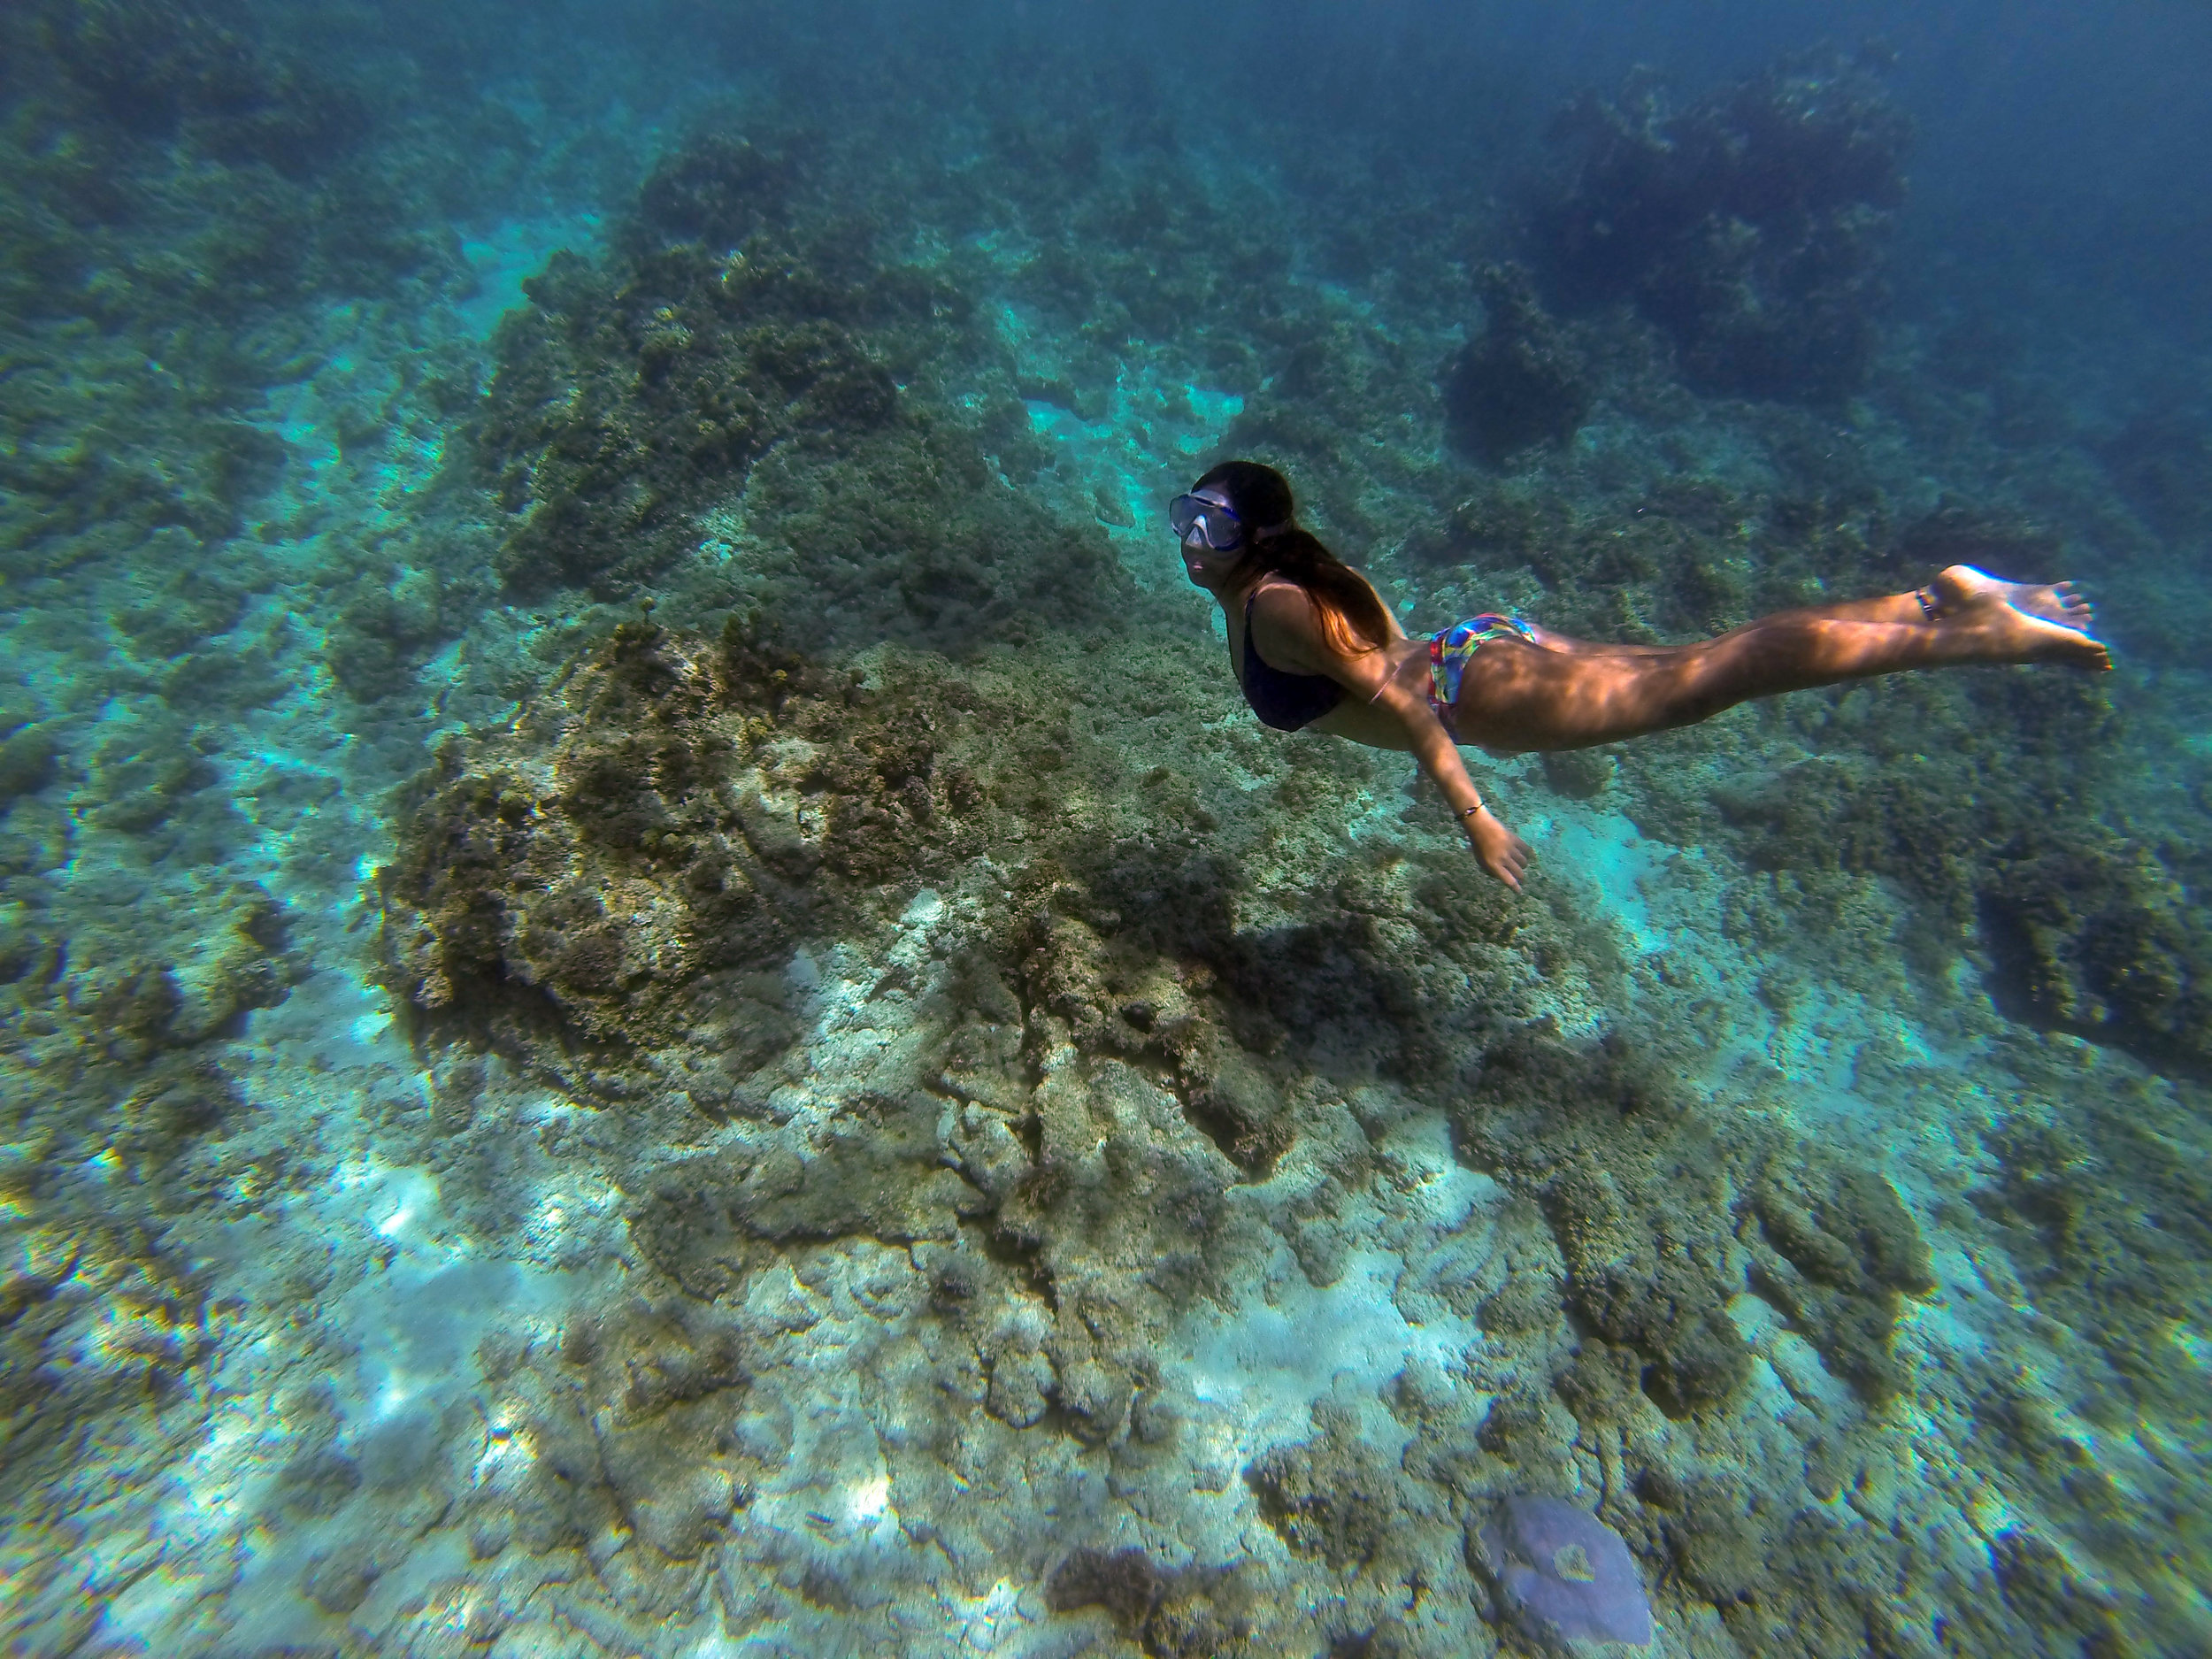 Underneath the clear blue waters of Dahican's sea are an assortment of reef and fine white sand.